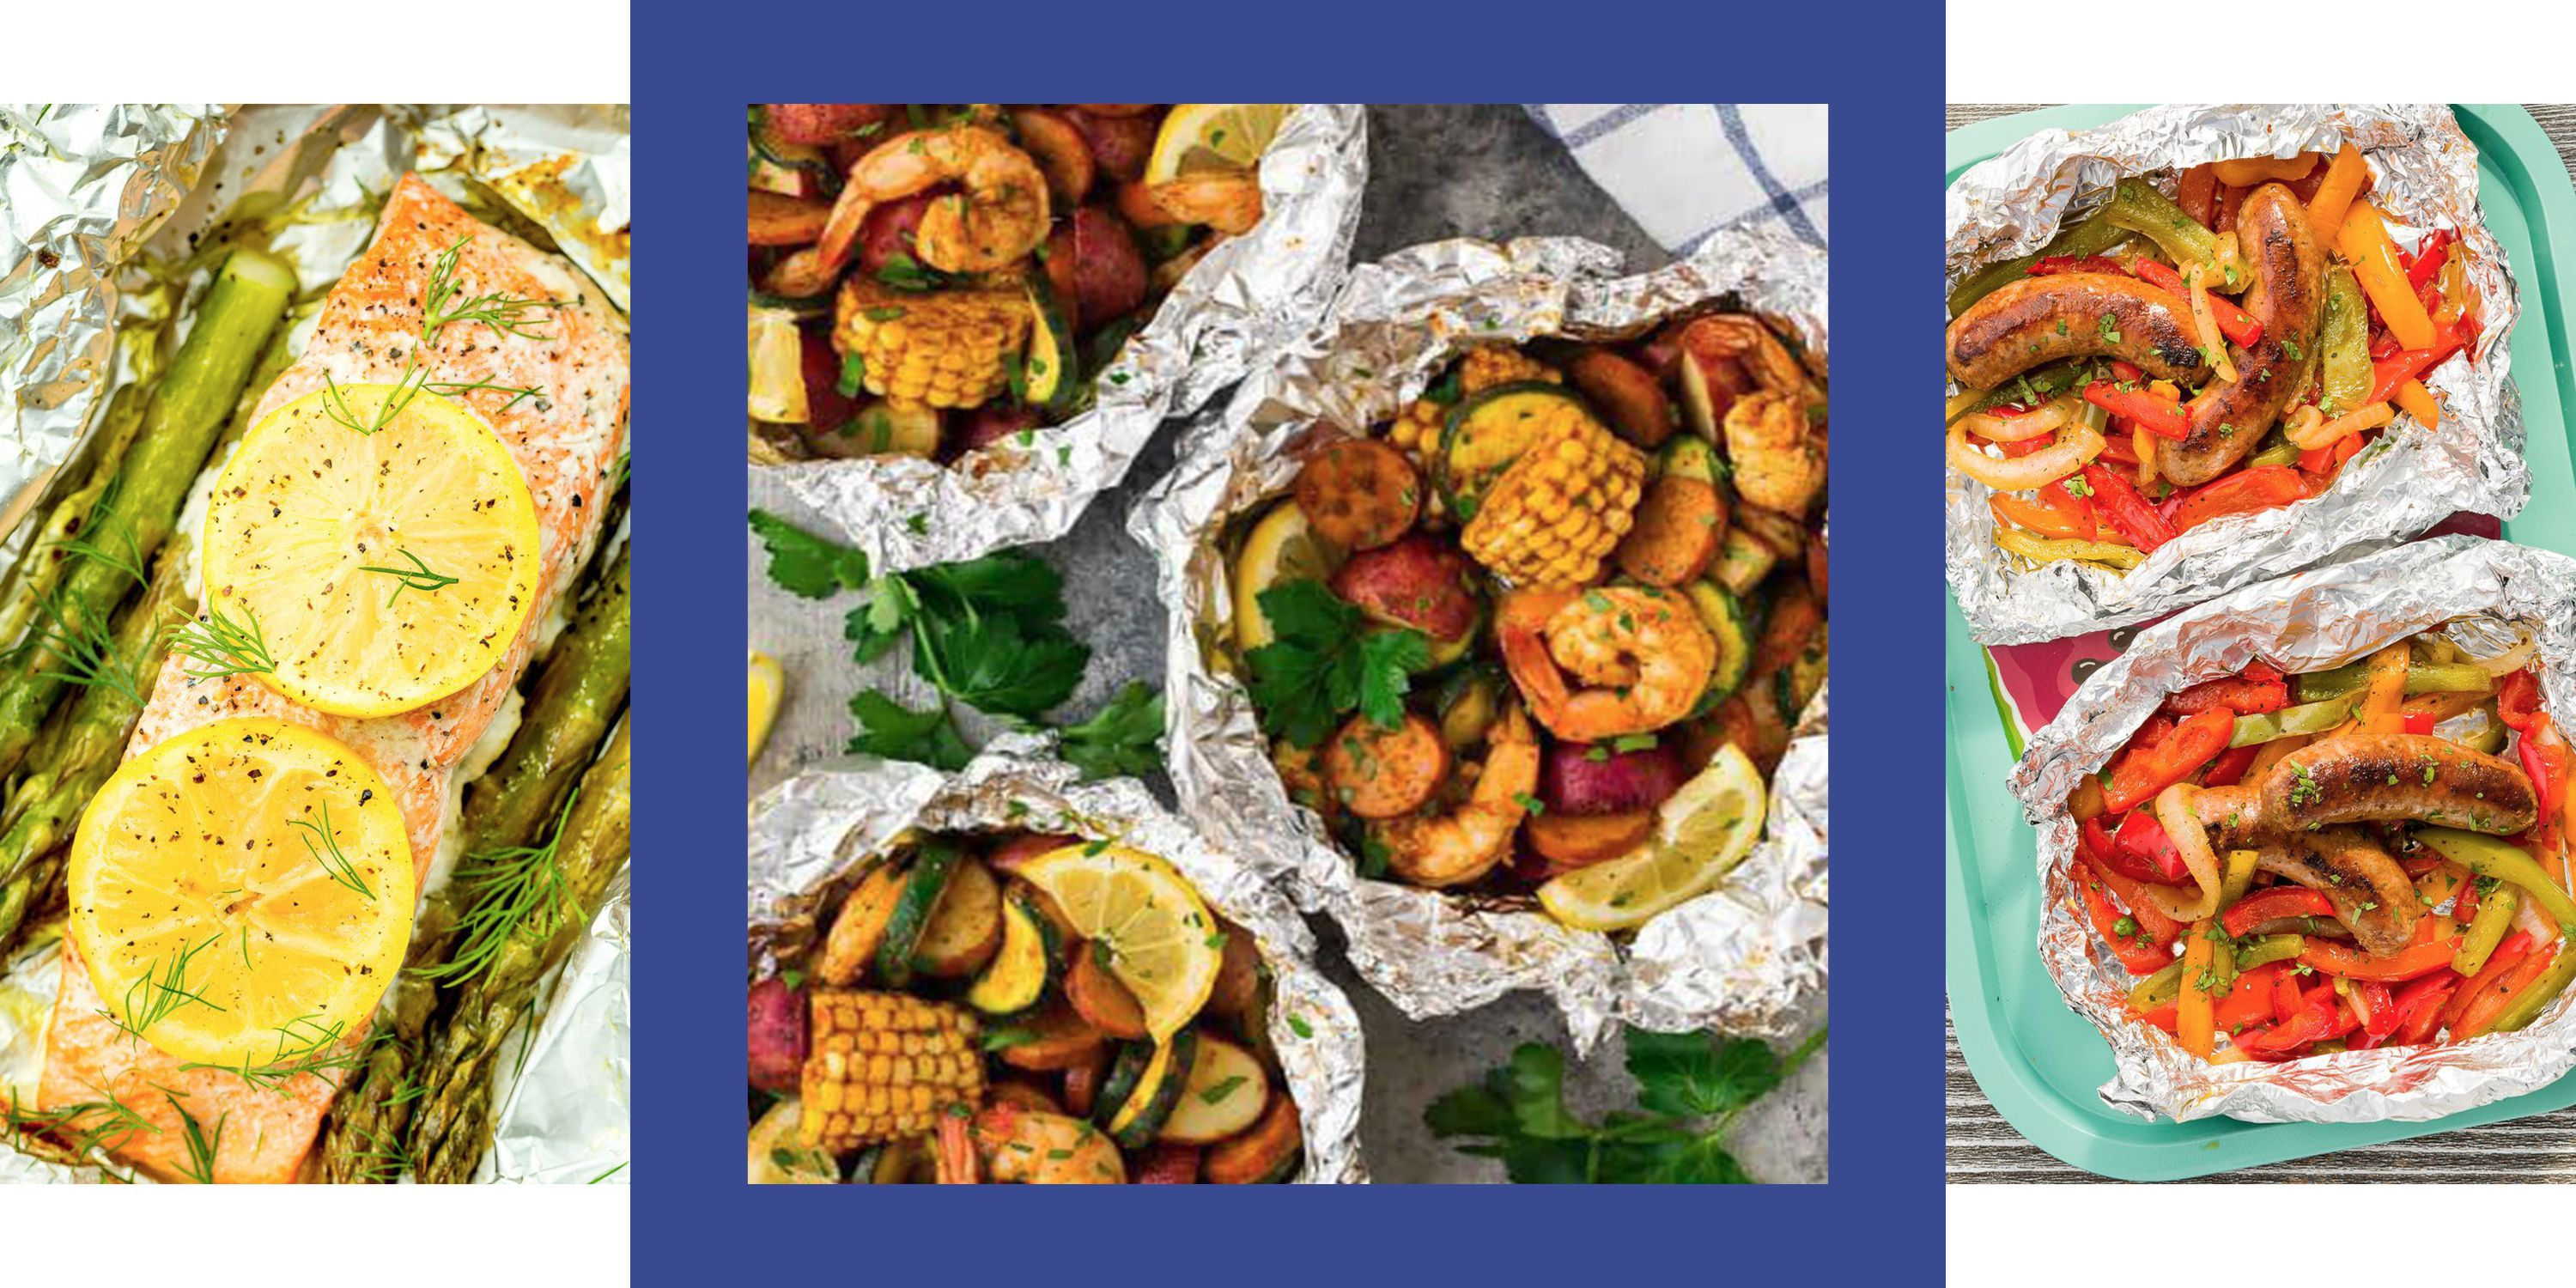 15 Foil Packet Dinner Ideas That Are Loaded With Protein and Veggies